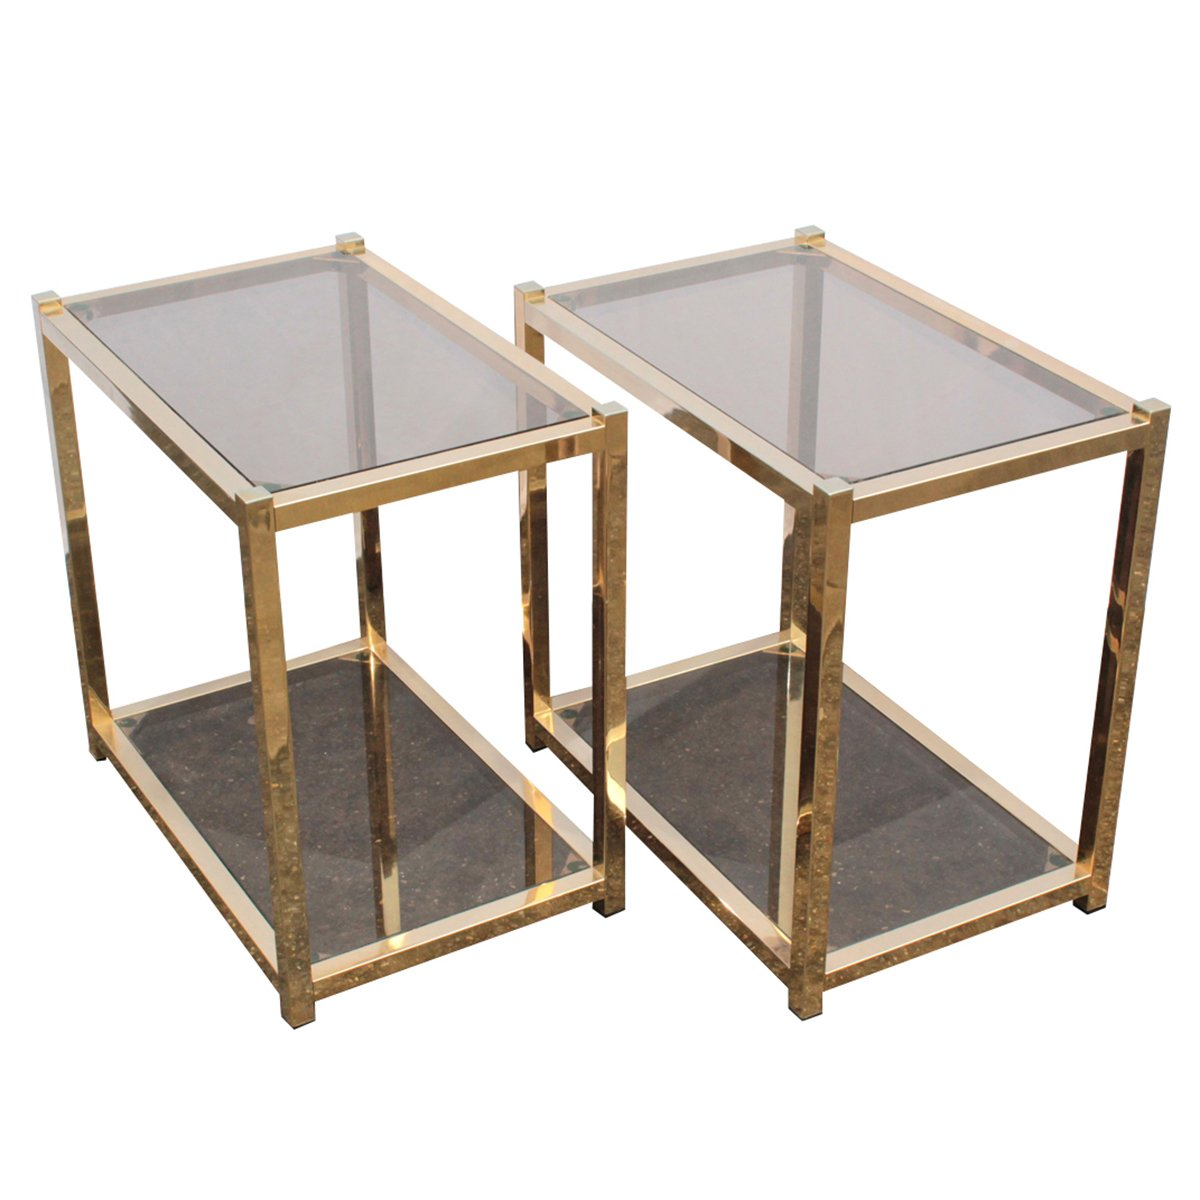 stool metal of shades light side table products galvanized